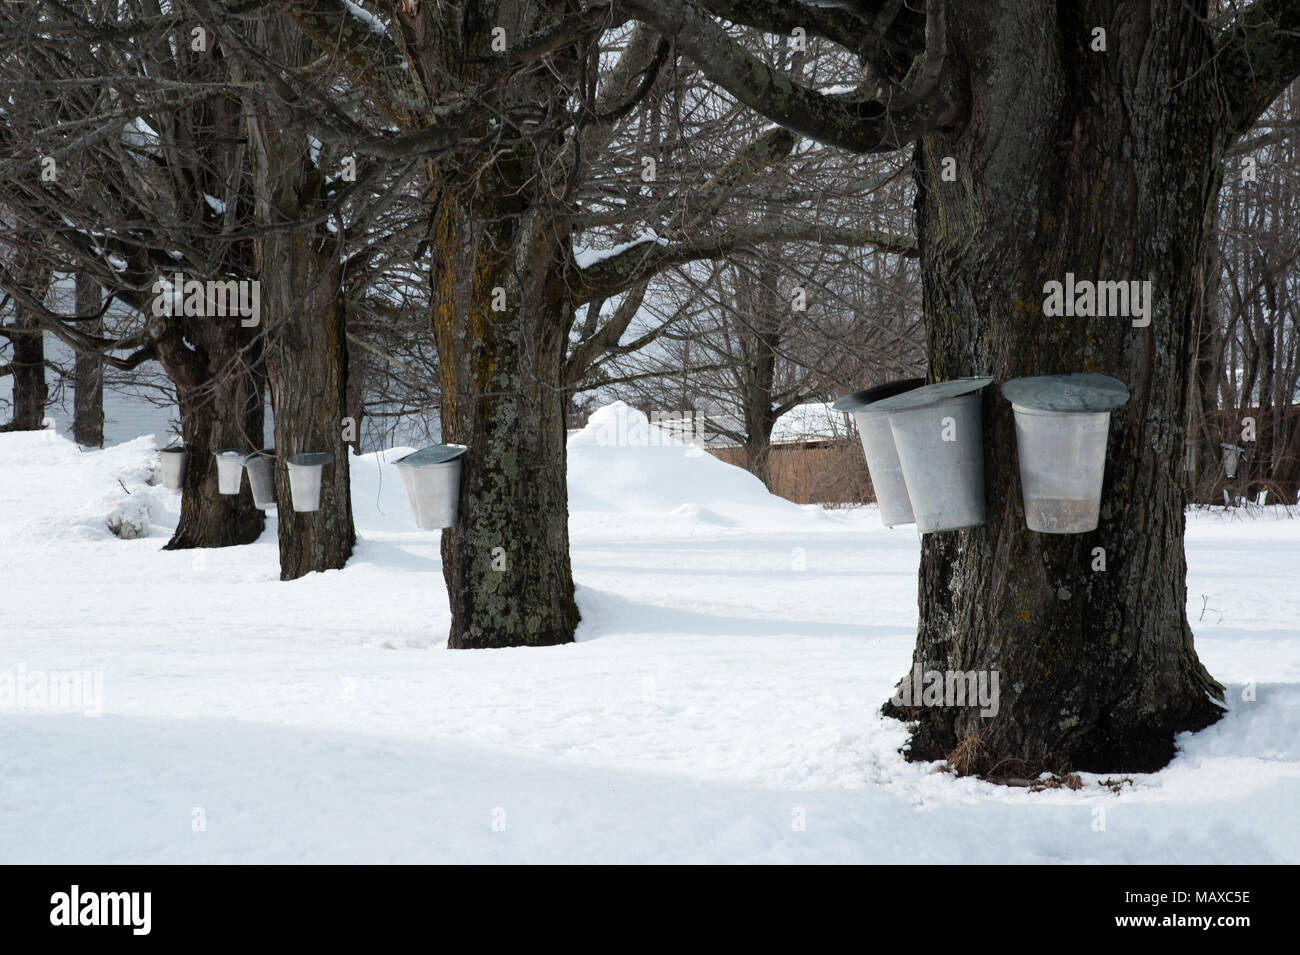 Traditional buckets collecting sap from old maple trees after a snowfall to make maple syrup in early spring in New England. - Stock Image